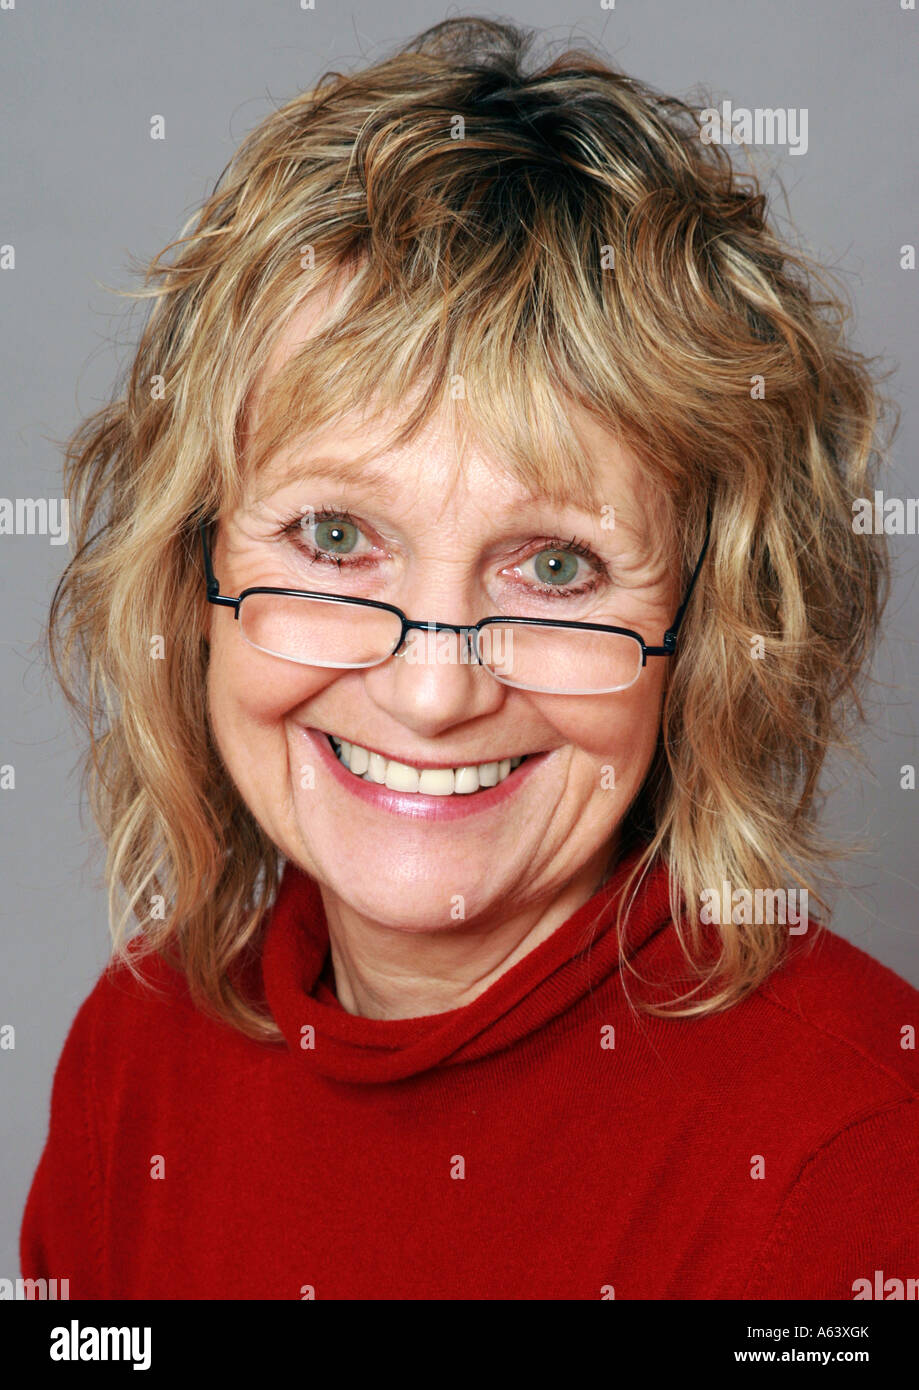 Smiling Sixty Year Old Woman Wearing Glasses Stock Photo